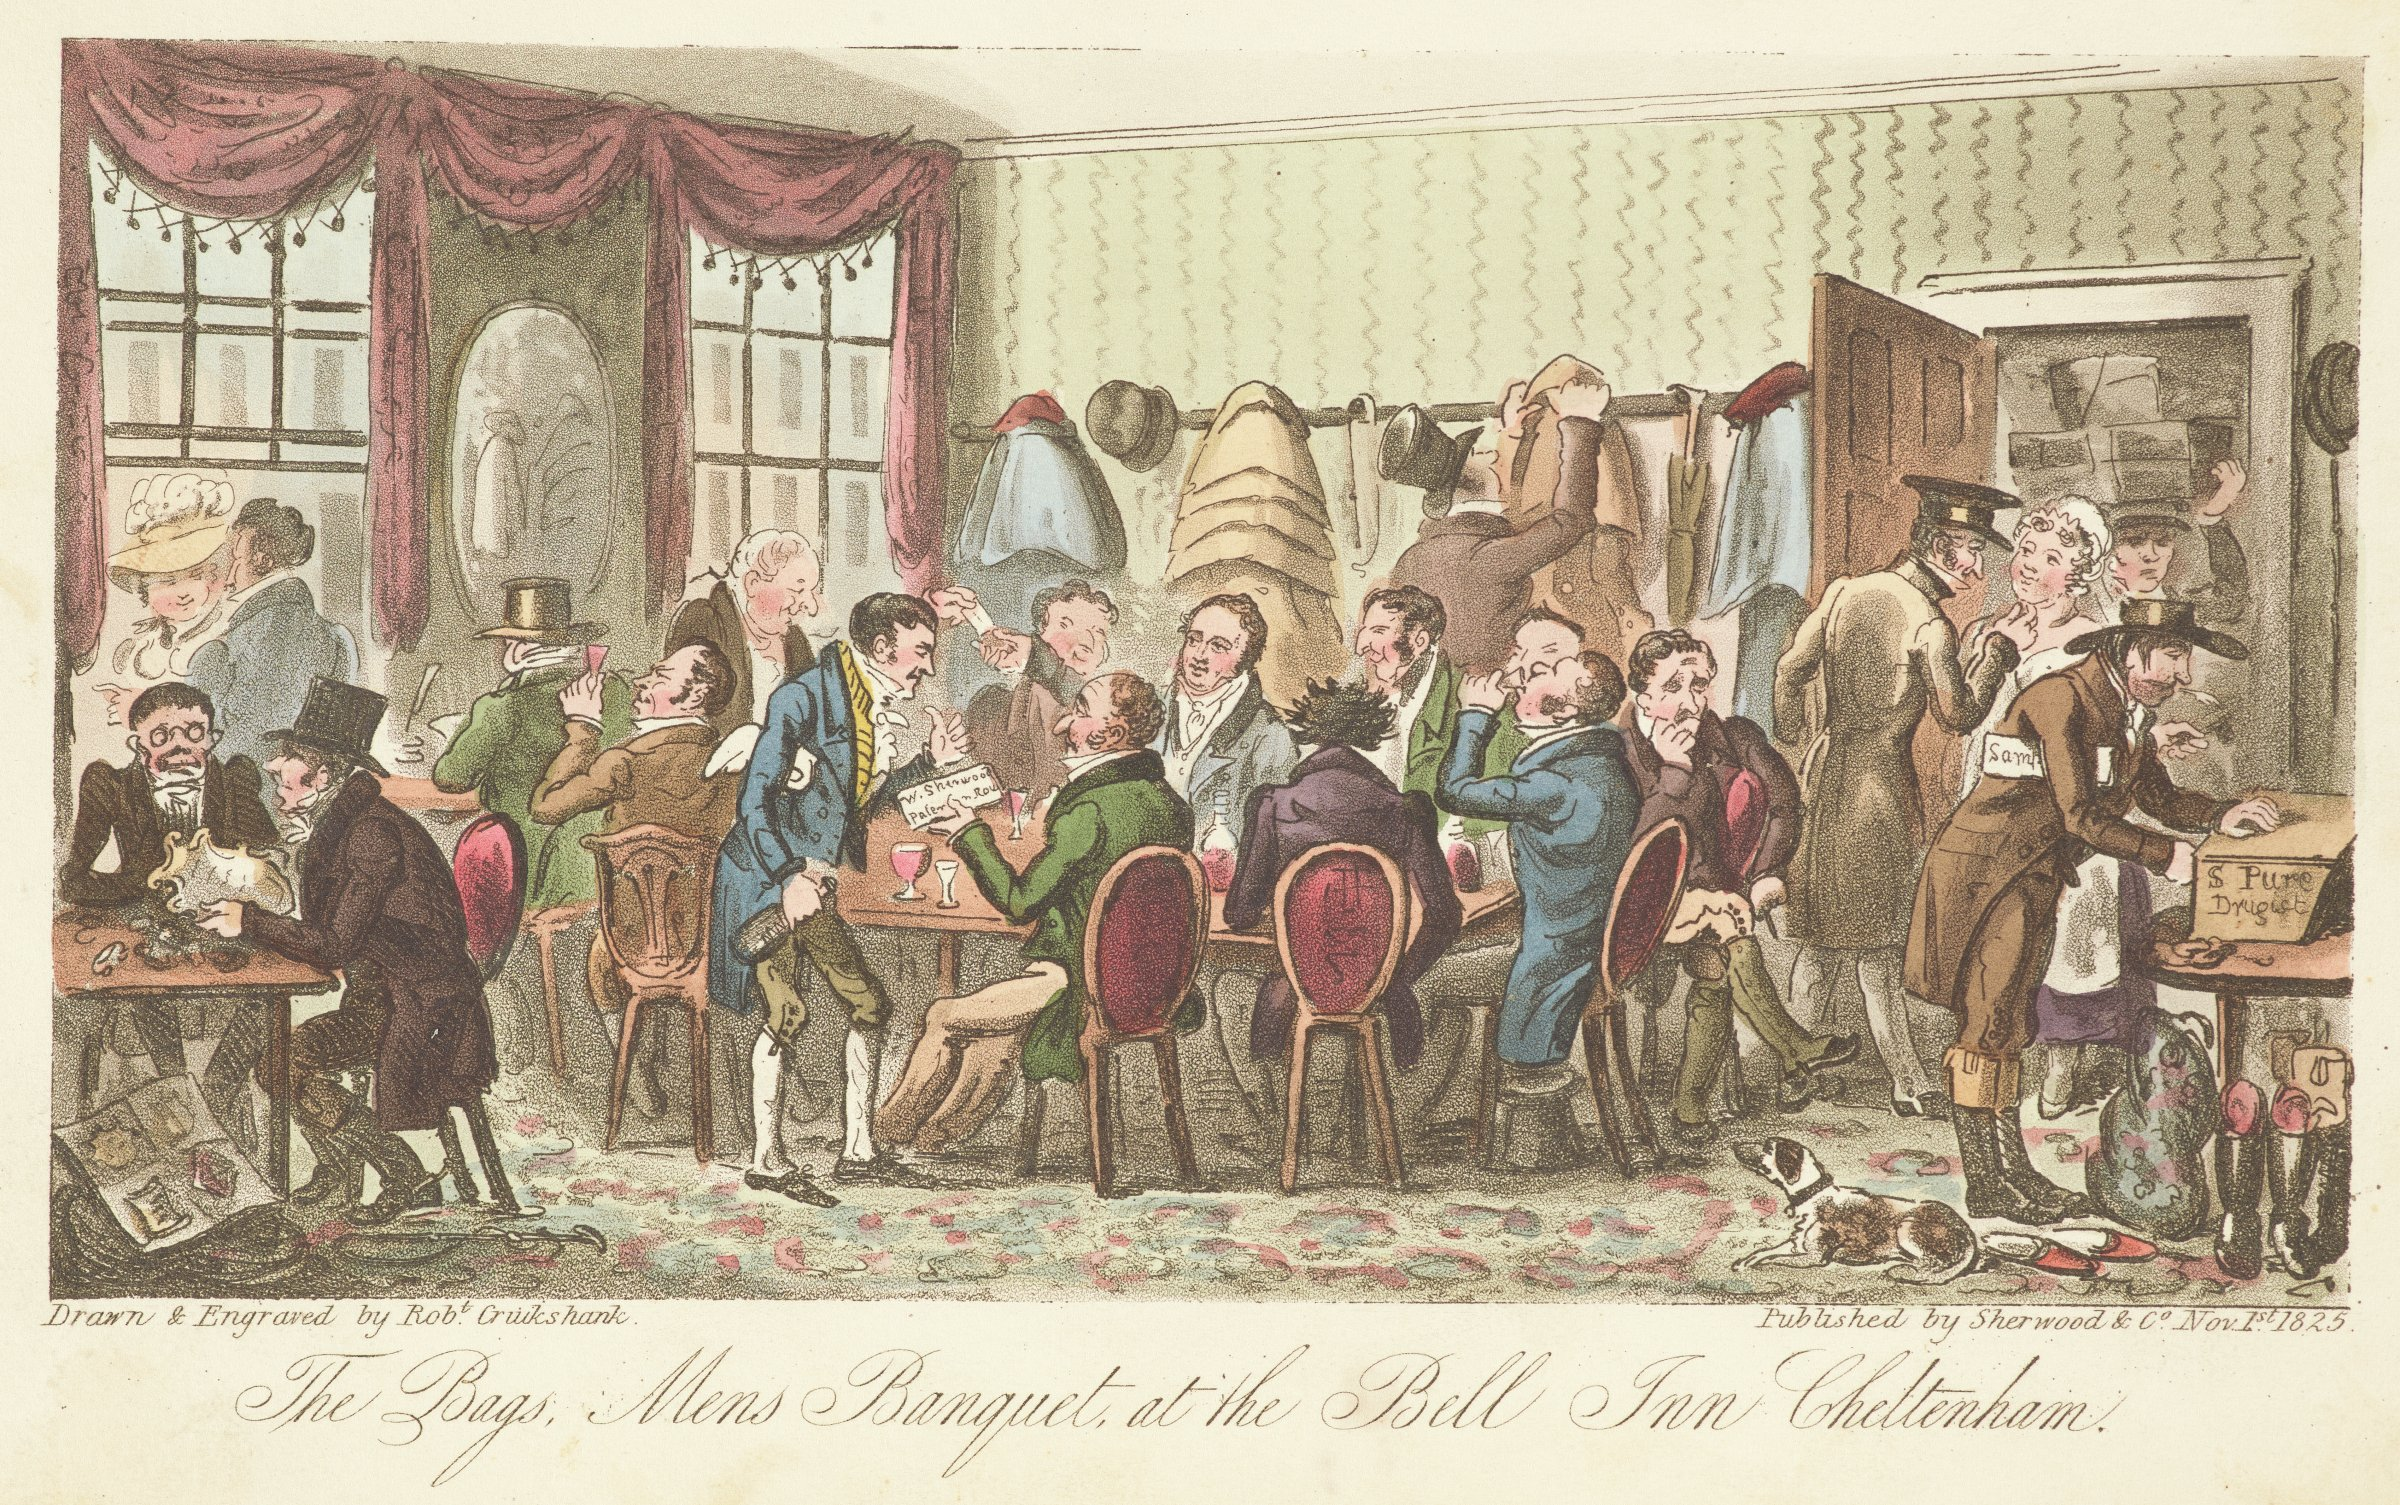 Scene of gentlemen drinking at tables in an inn. A woman, whose chin is being tickled, enters a door, on the right. On the other side of the room, a man talks to a woman through an open window.